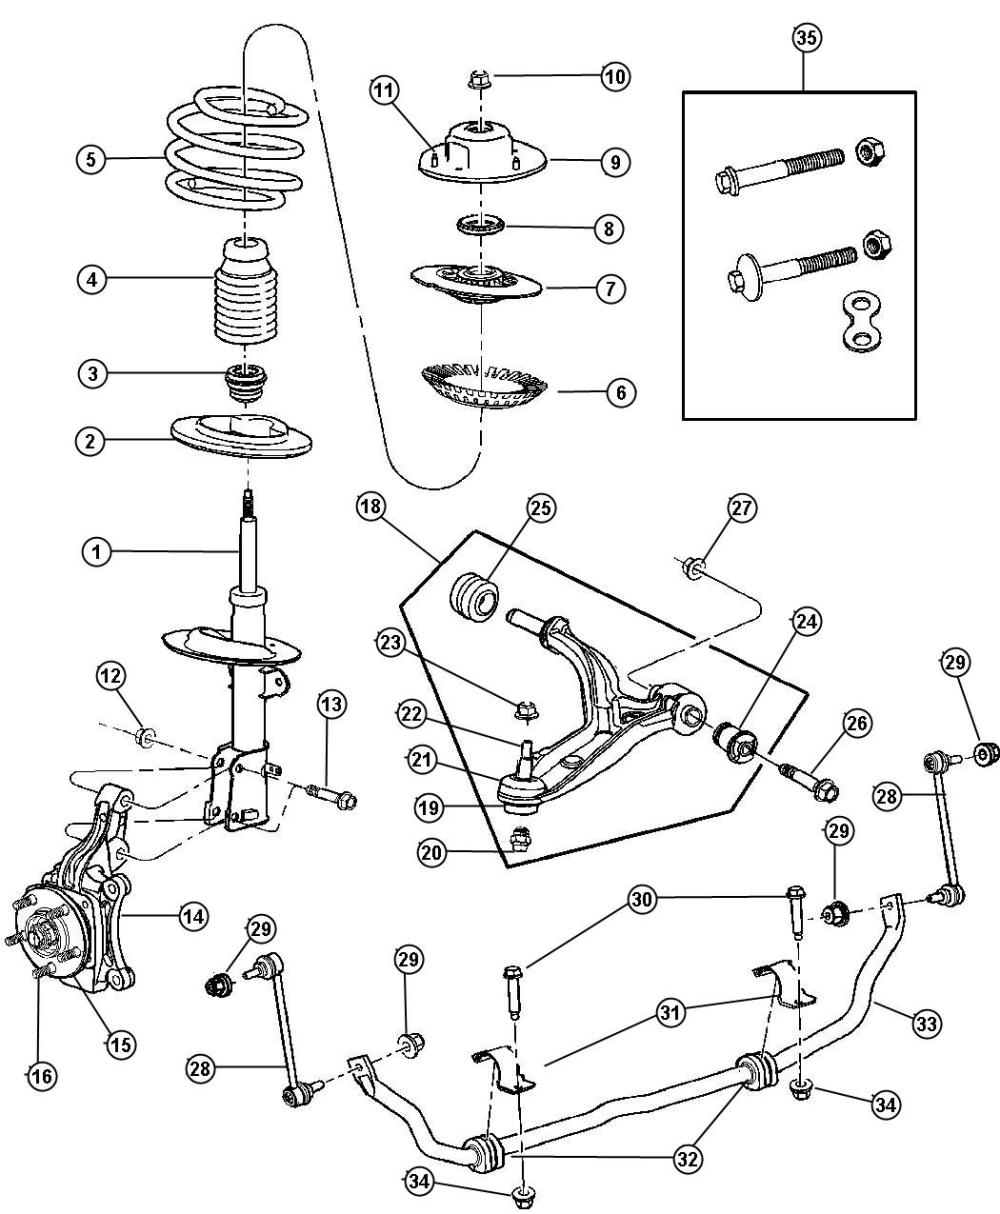 medium resolution of dodge neon wiring diagram download diagrams dodge auto 1995 dodge neon 1999 dodge neon highline 1995 dodge caravan fuse box